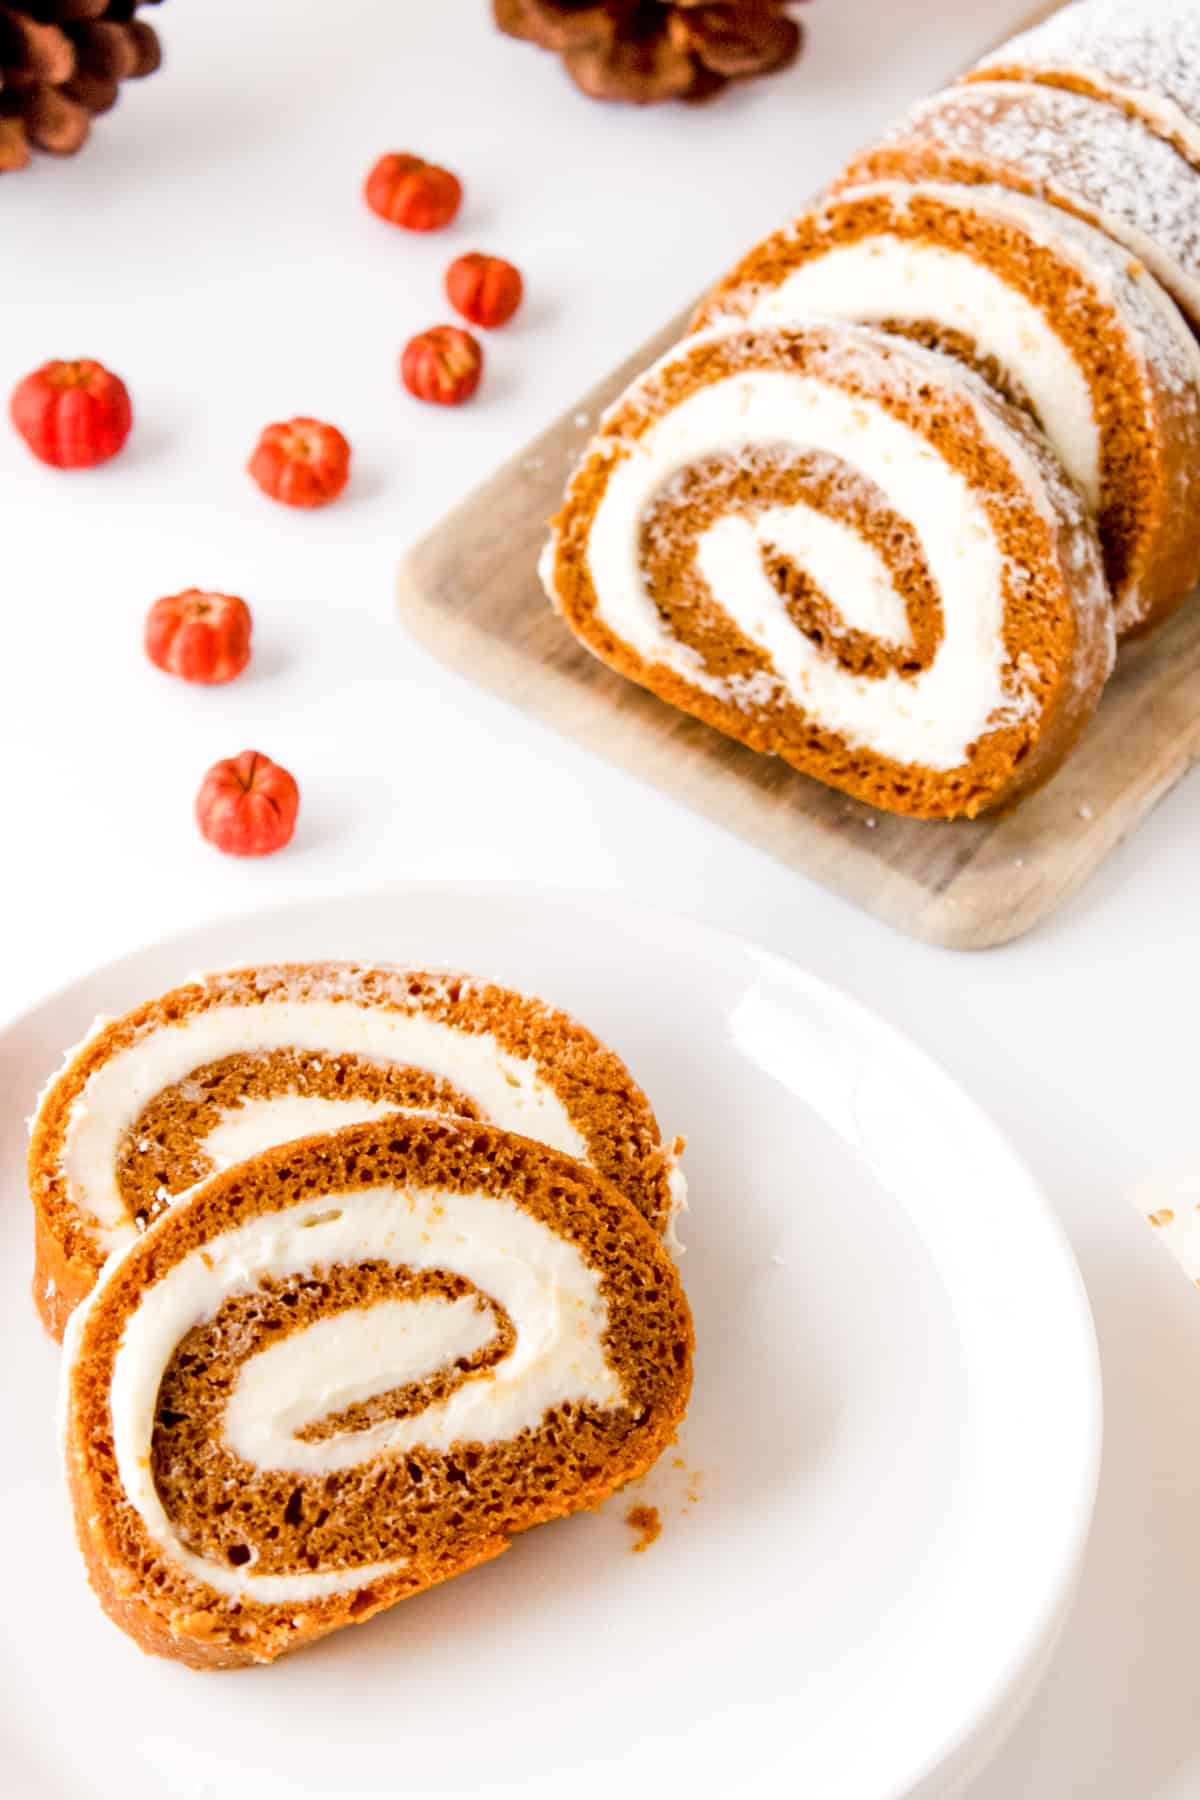 Slices of pumpkin roll cake on white plate with additional slices on light wood board.